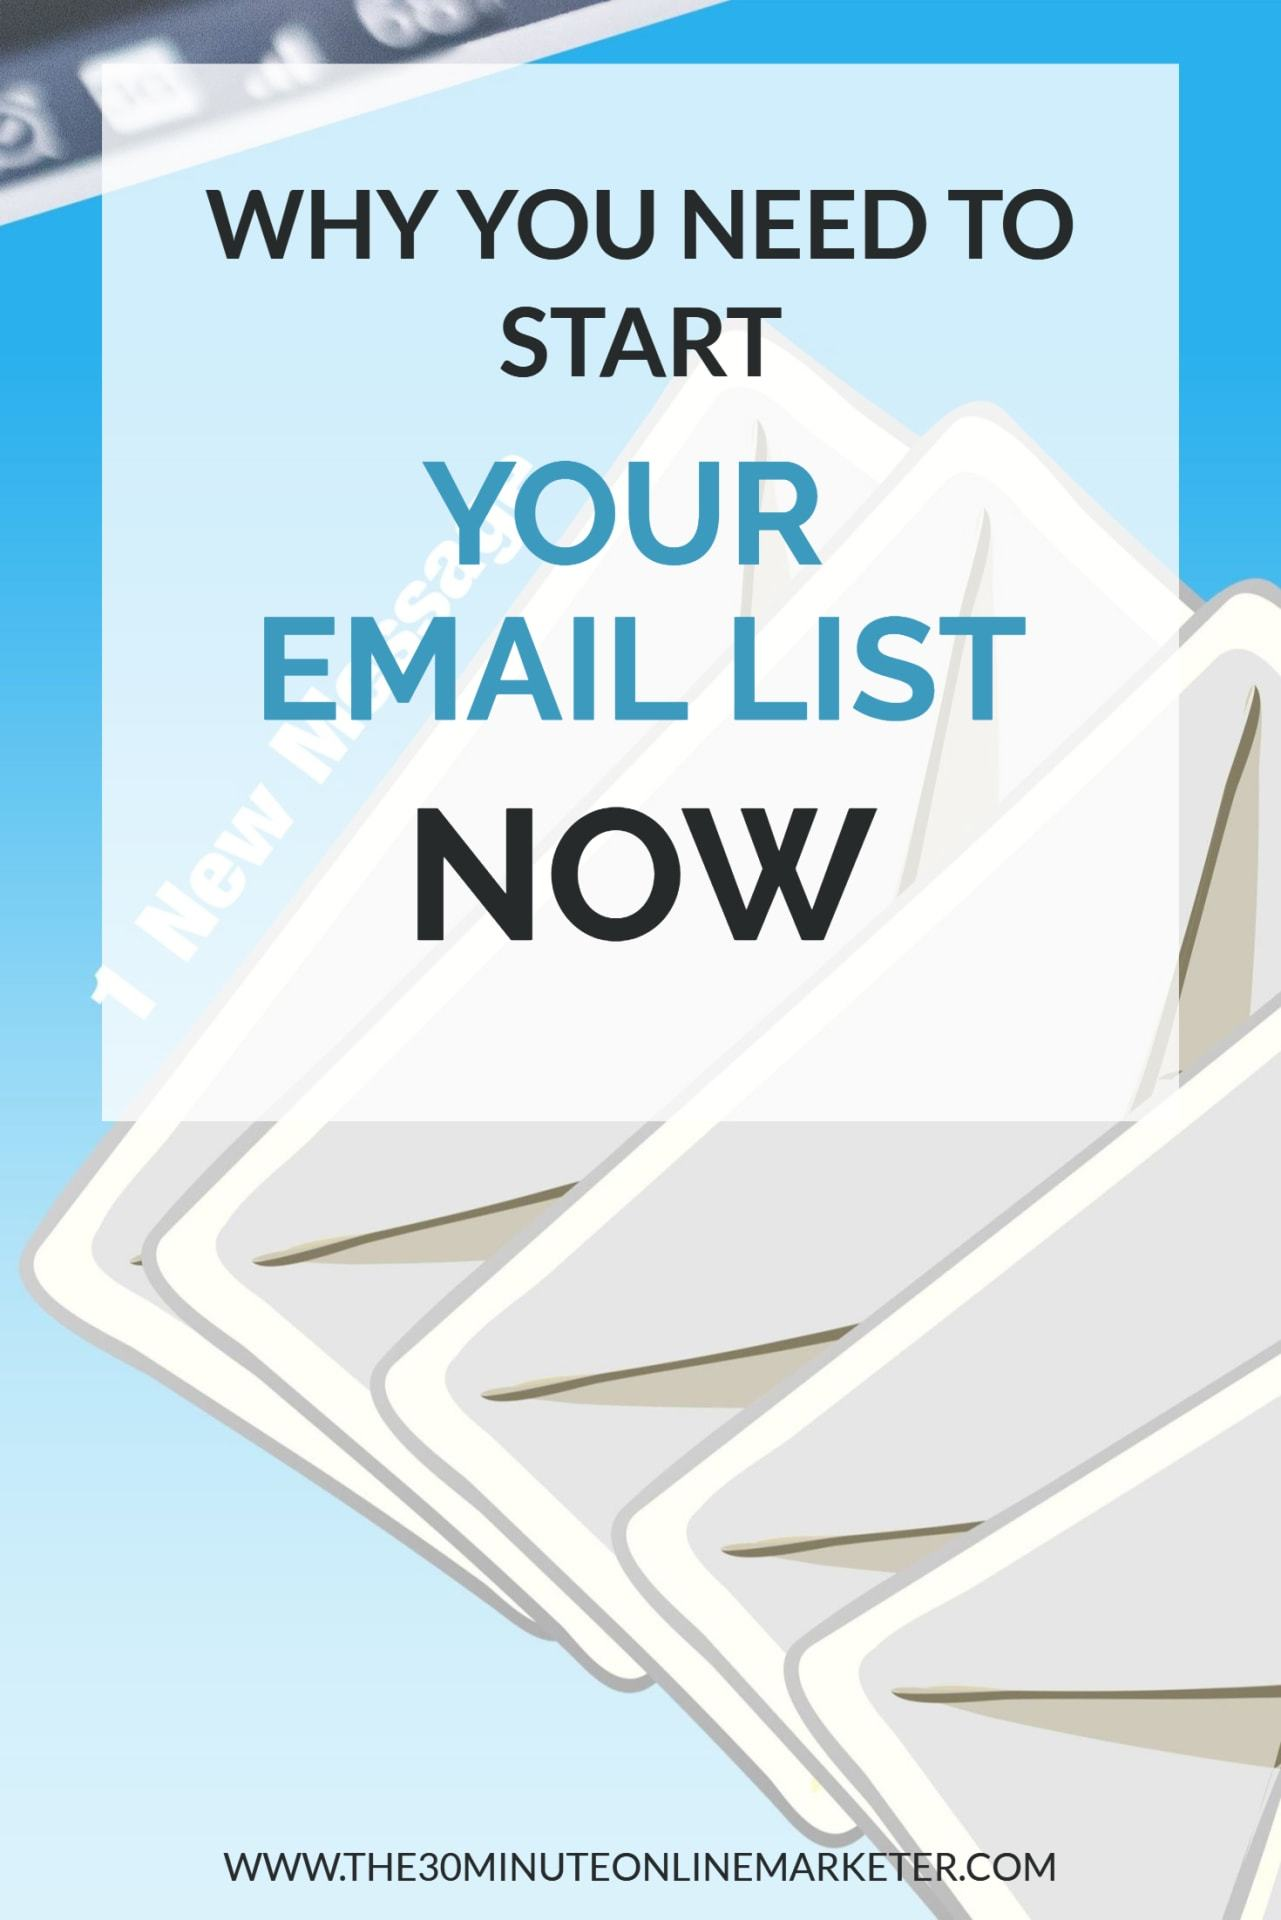 Why you need to start your email list now